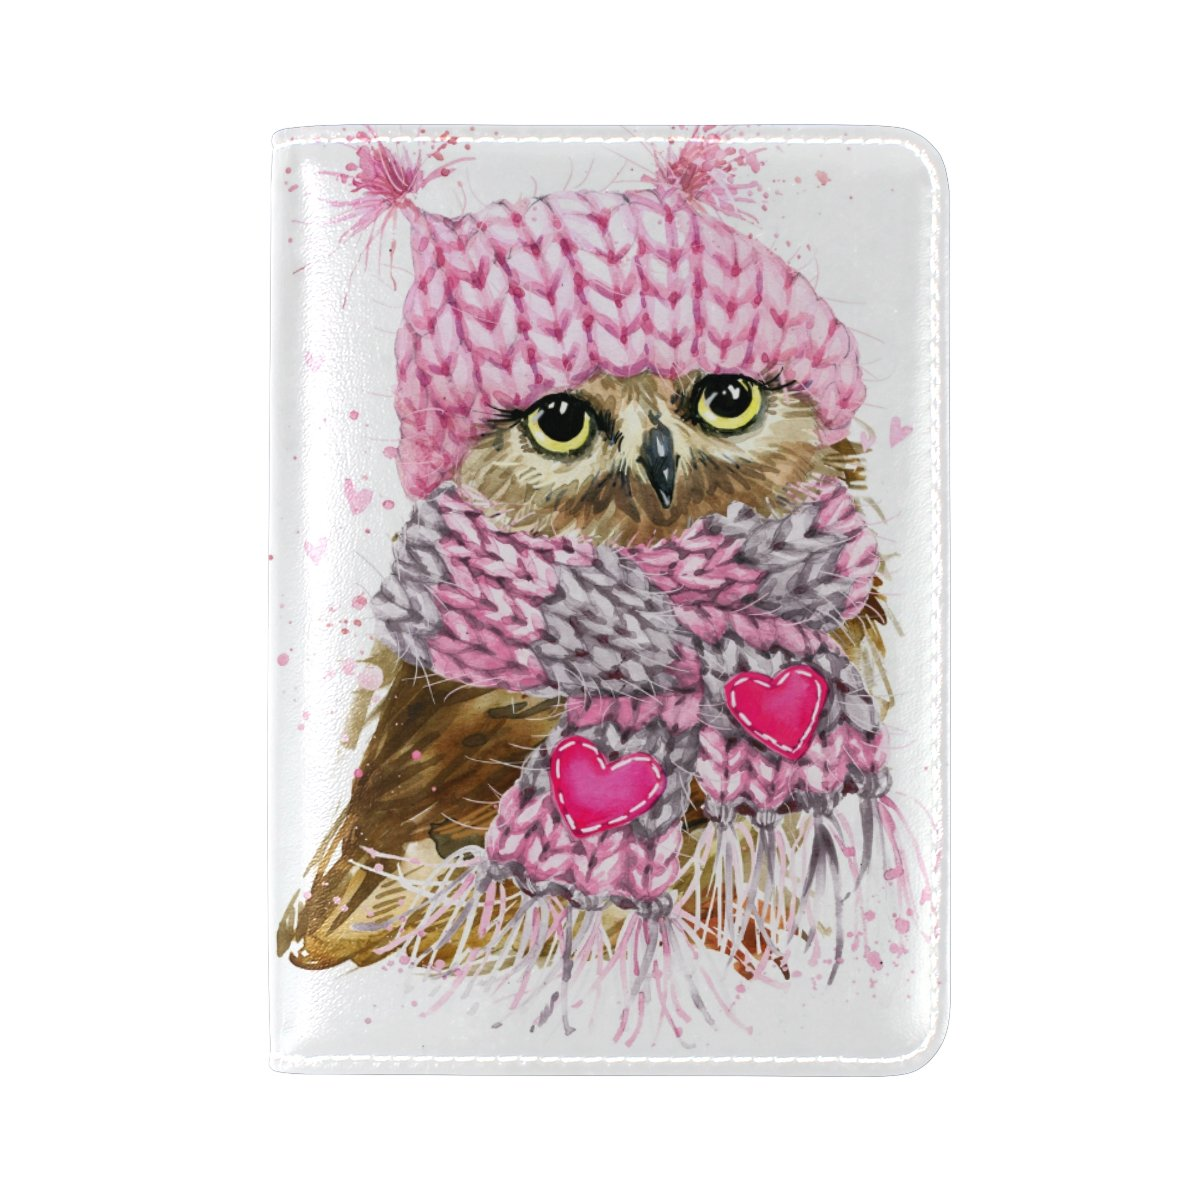 Owl Heart Waterproof Genuine Leather Travel Passport Covers Holder Case Protector